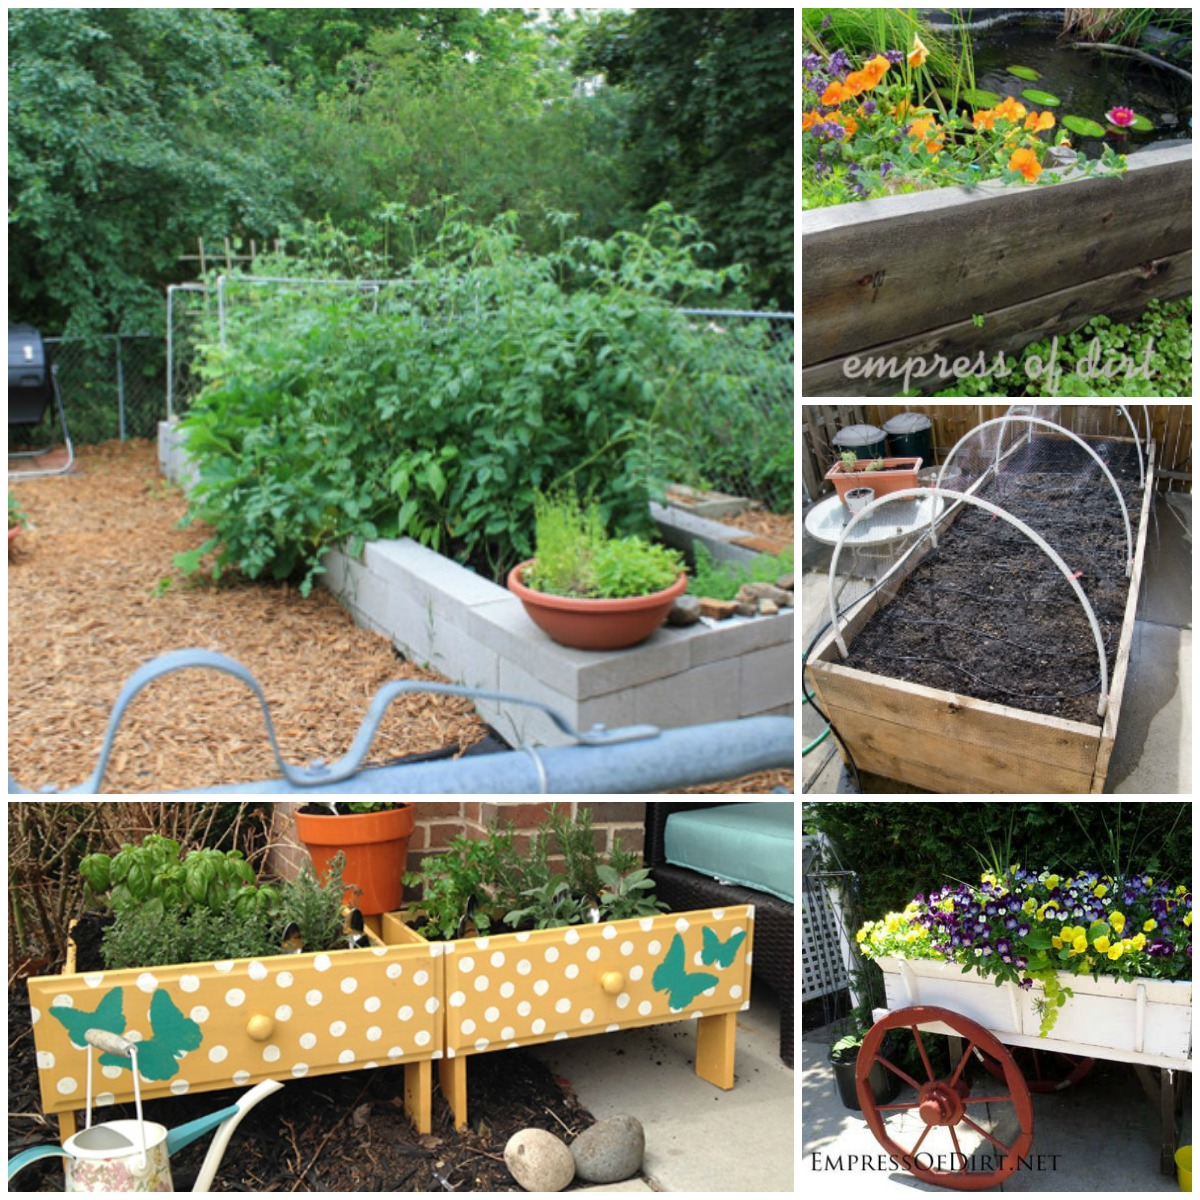 15 Creative Garden Ideas You Can Steal: 20 Brilliant Raised Garden Bed Ideas You Can Make In A